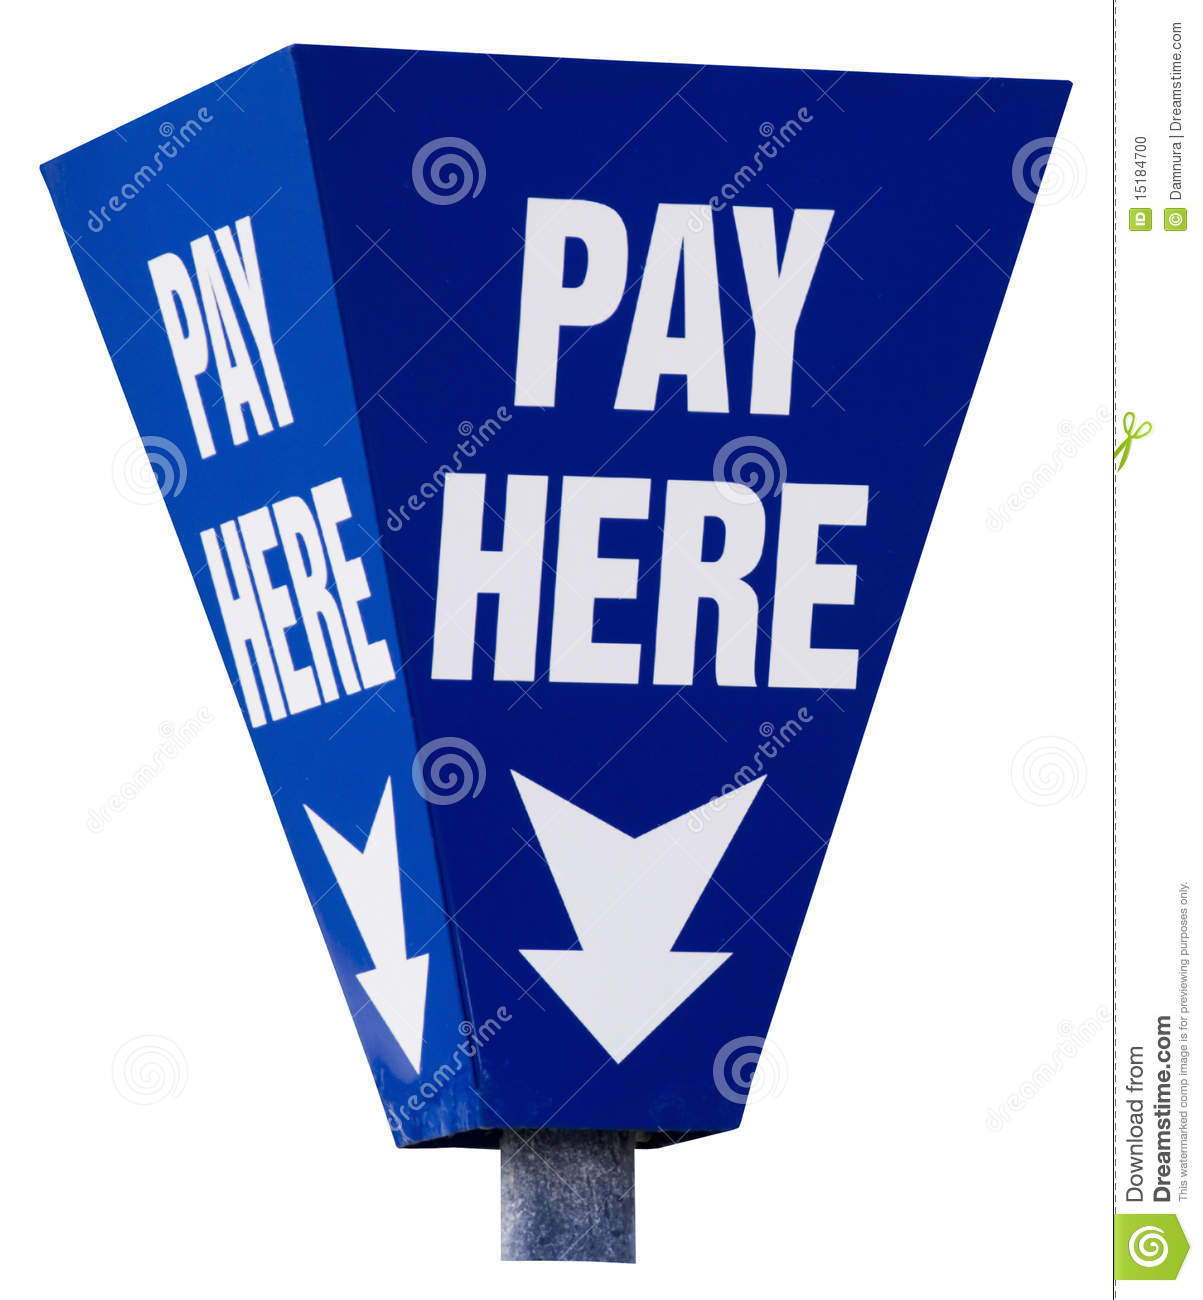 Pay Here Sign Isolated On White Stock Photo - Image: 15184700